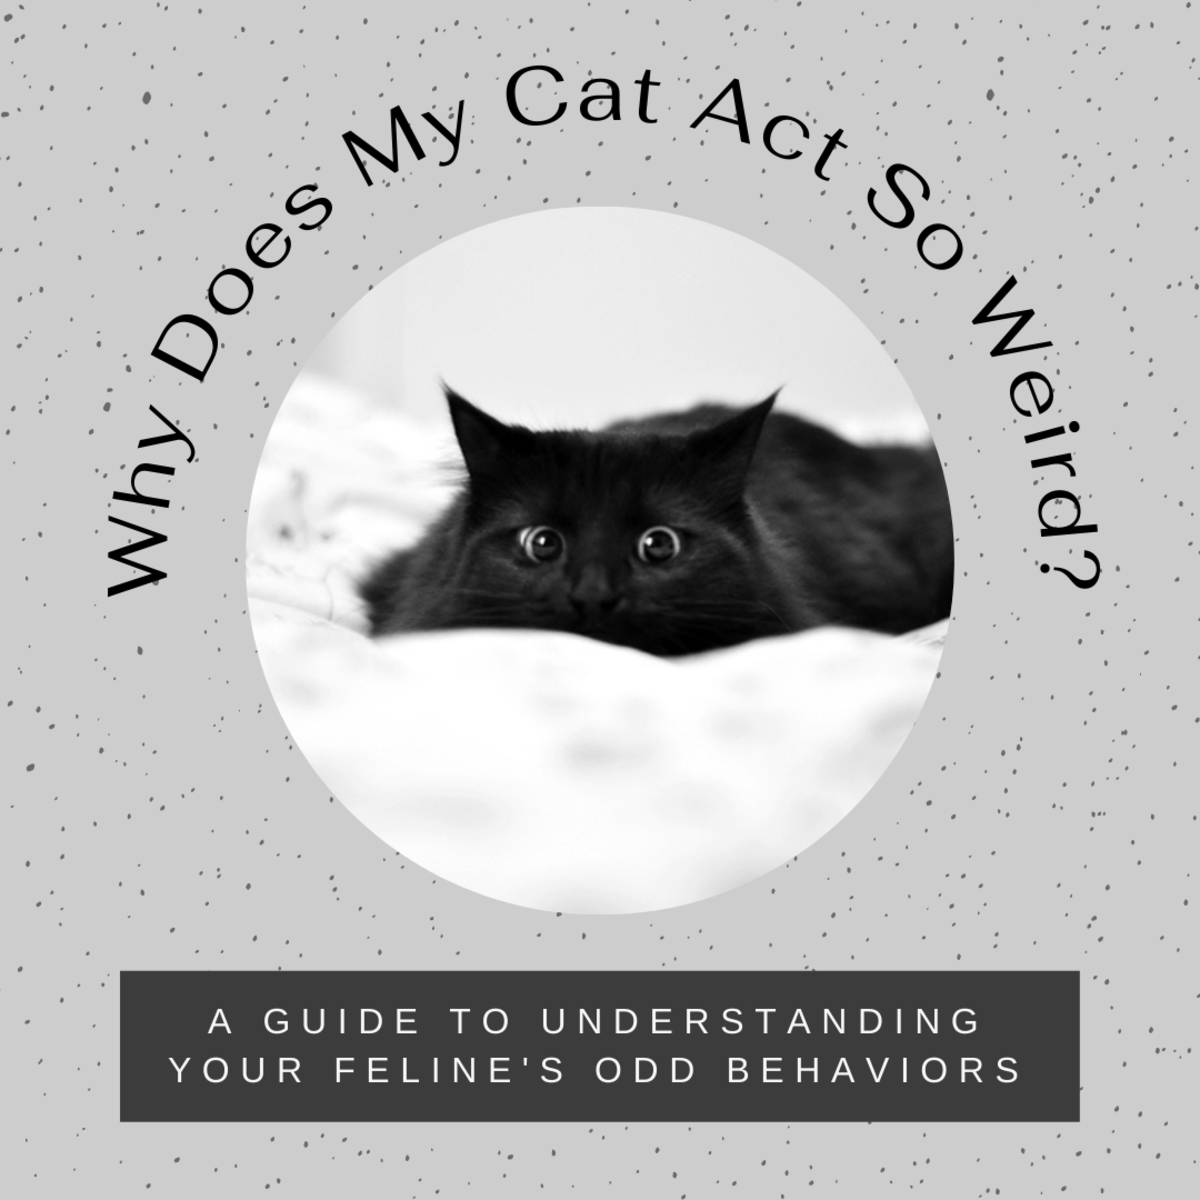 This article will help you gain a better understanding of your cat's odd behavioral patterns.